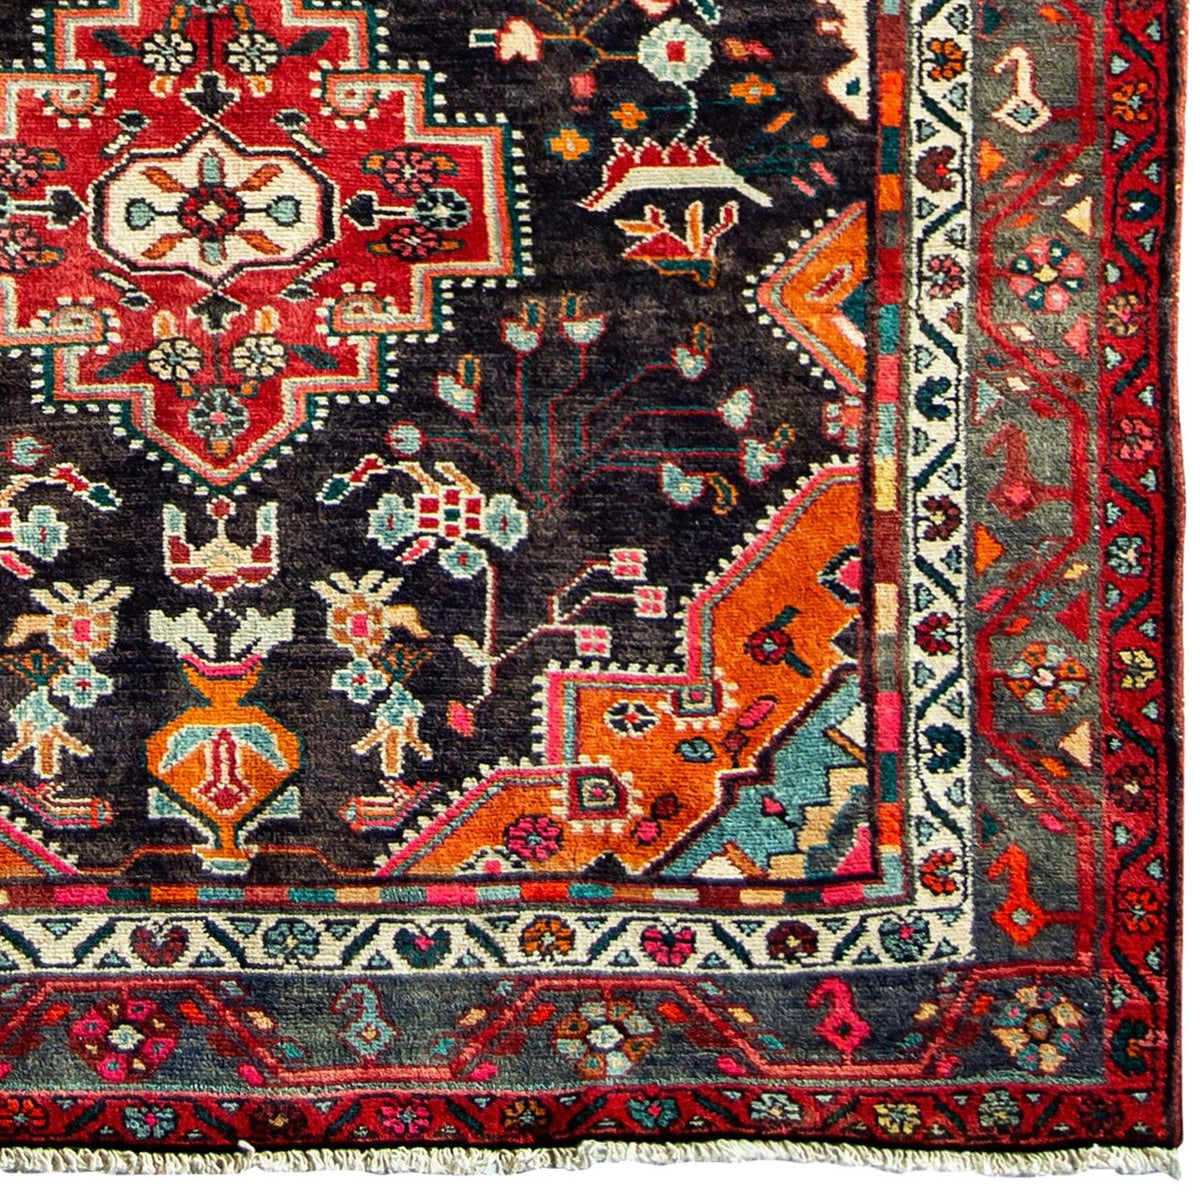 14124 Persian-Rug | House-of-Haghi | NewMarket | Auckland | NZ | Handmade Persian Rugs | Hand Knotted Persian Rugs